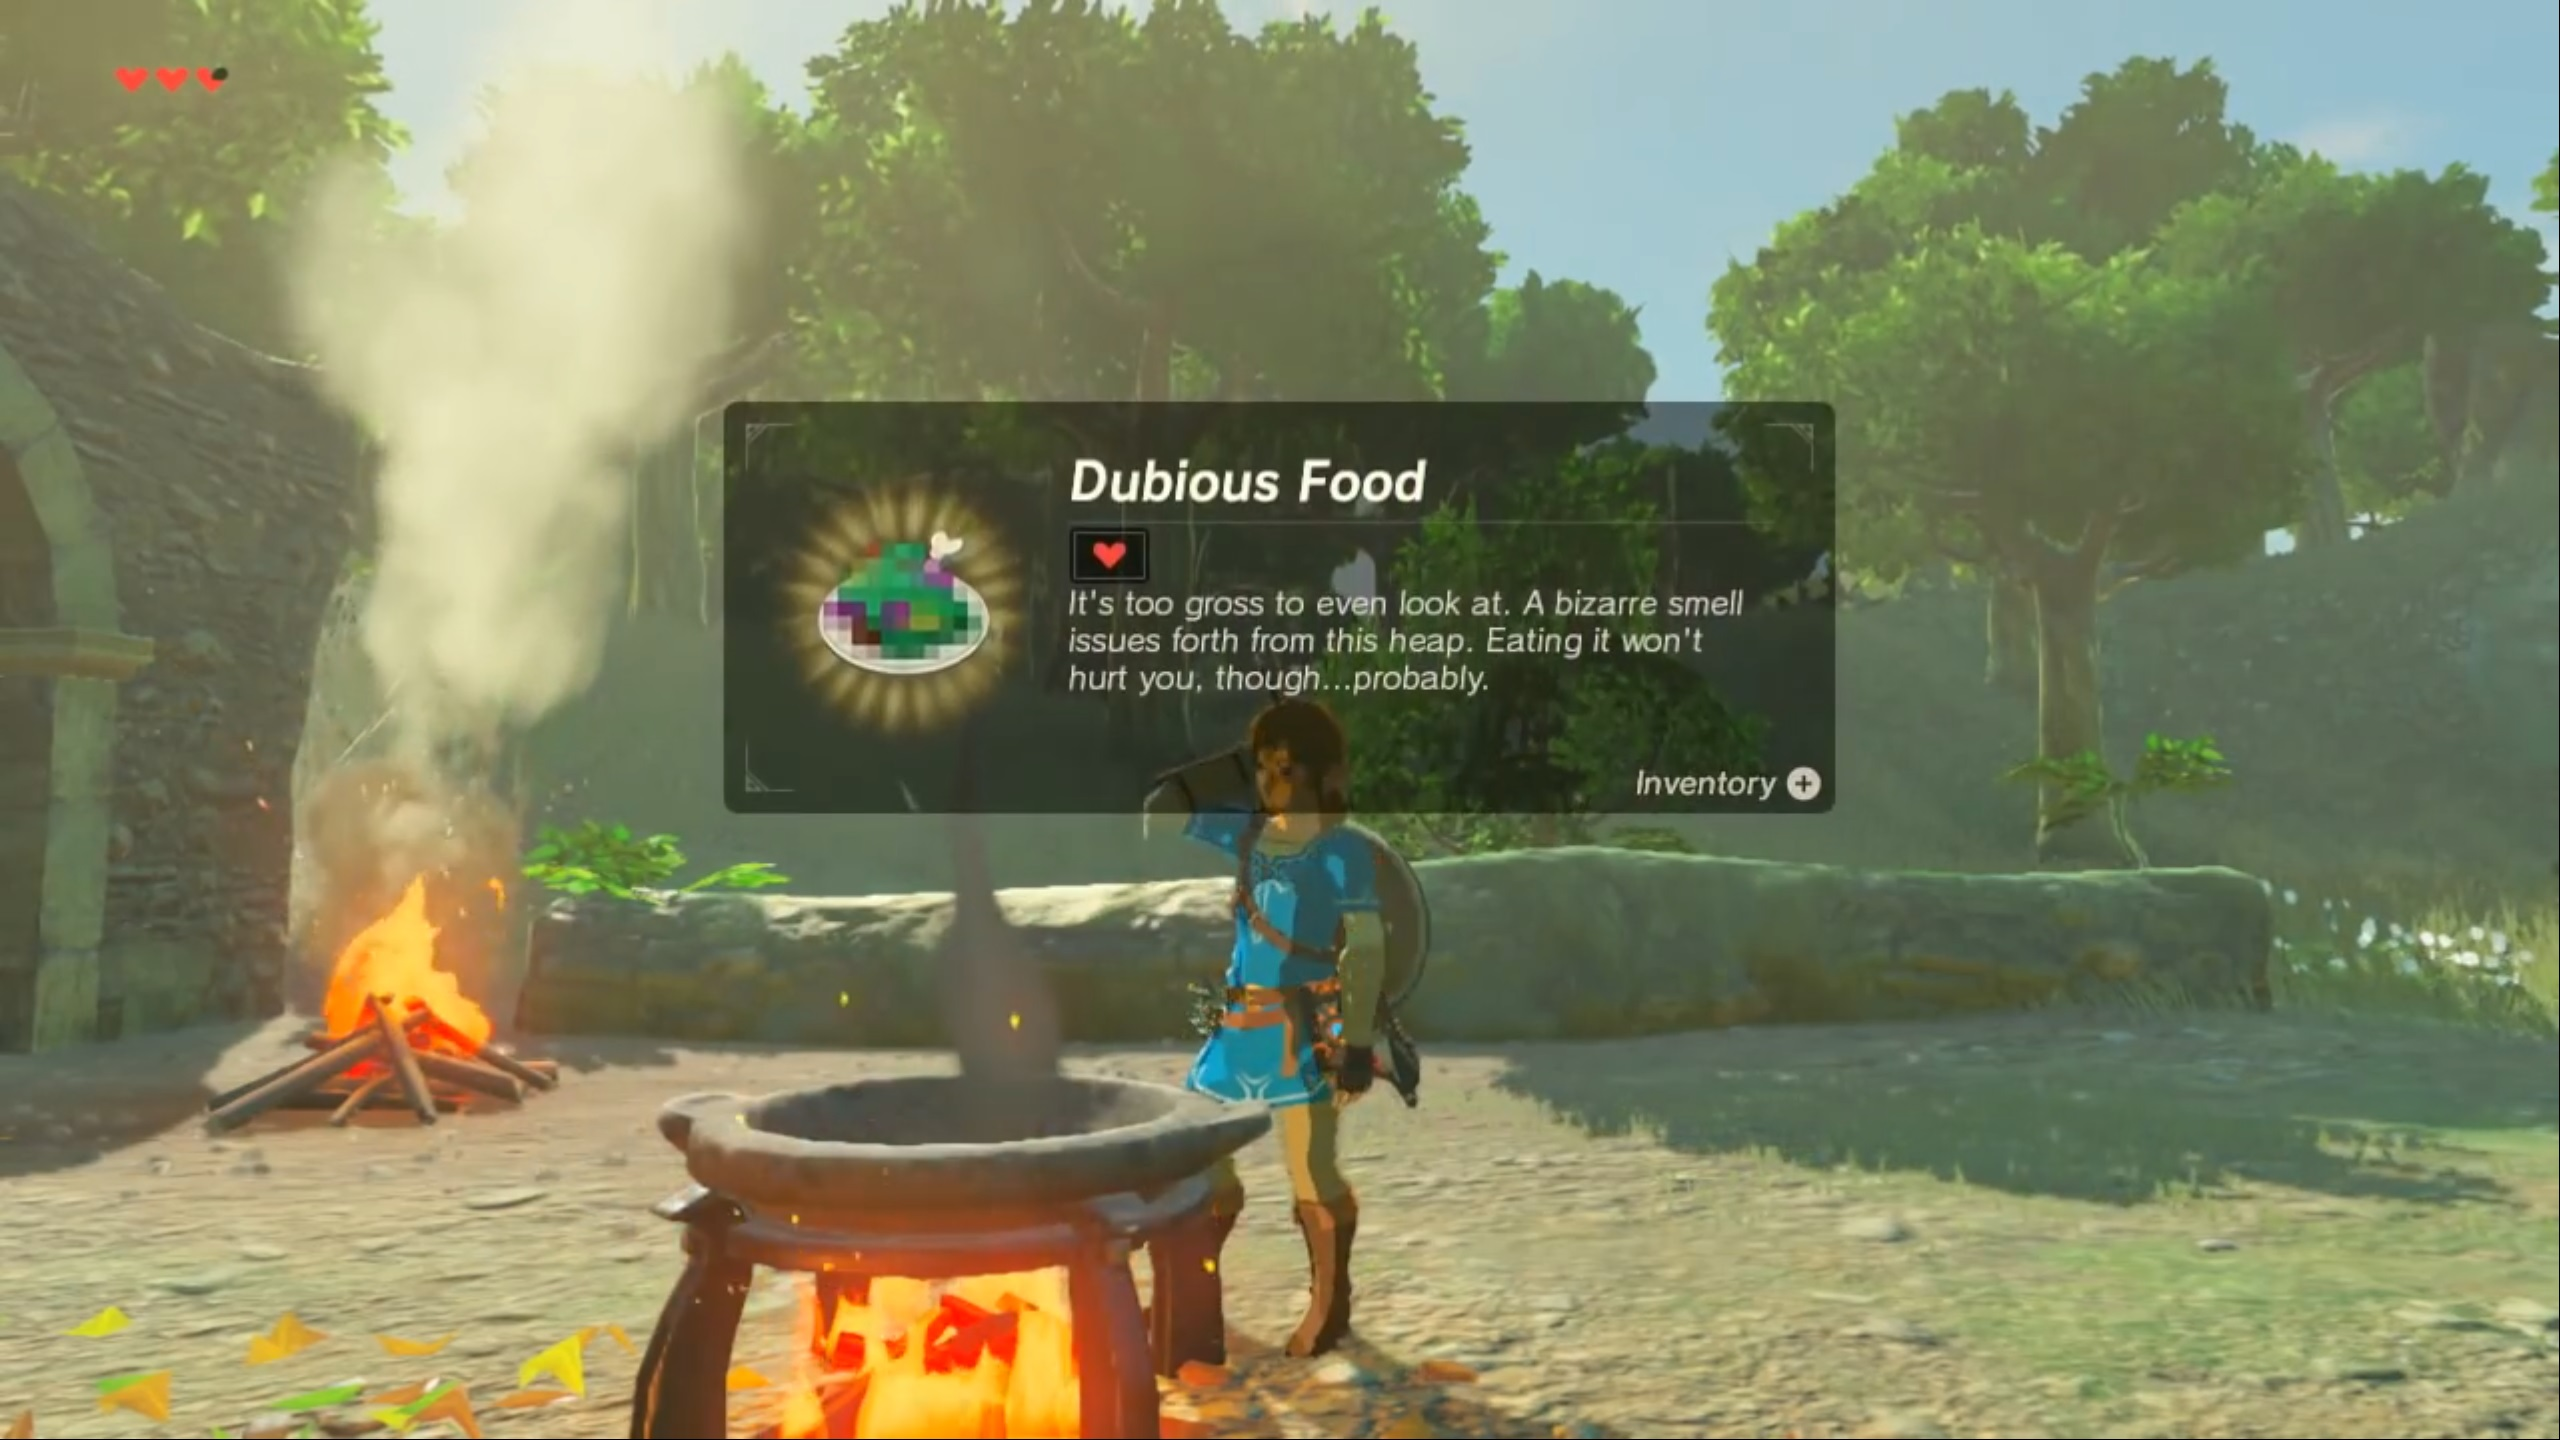 Getting dubious food in Breath of the Wild